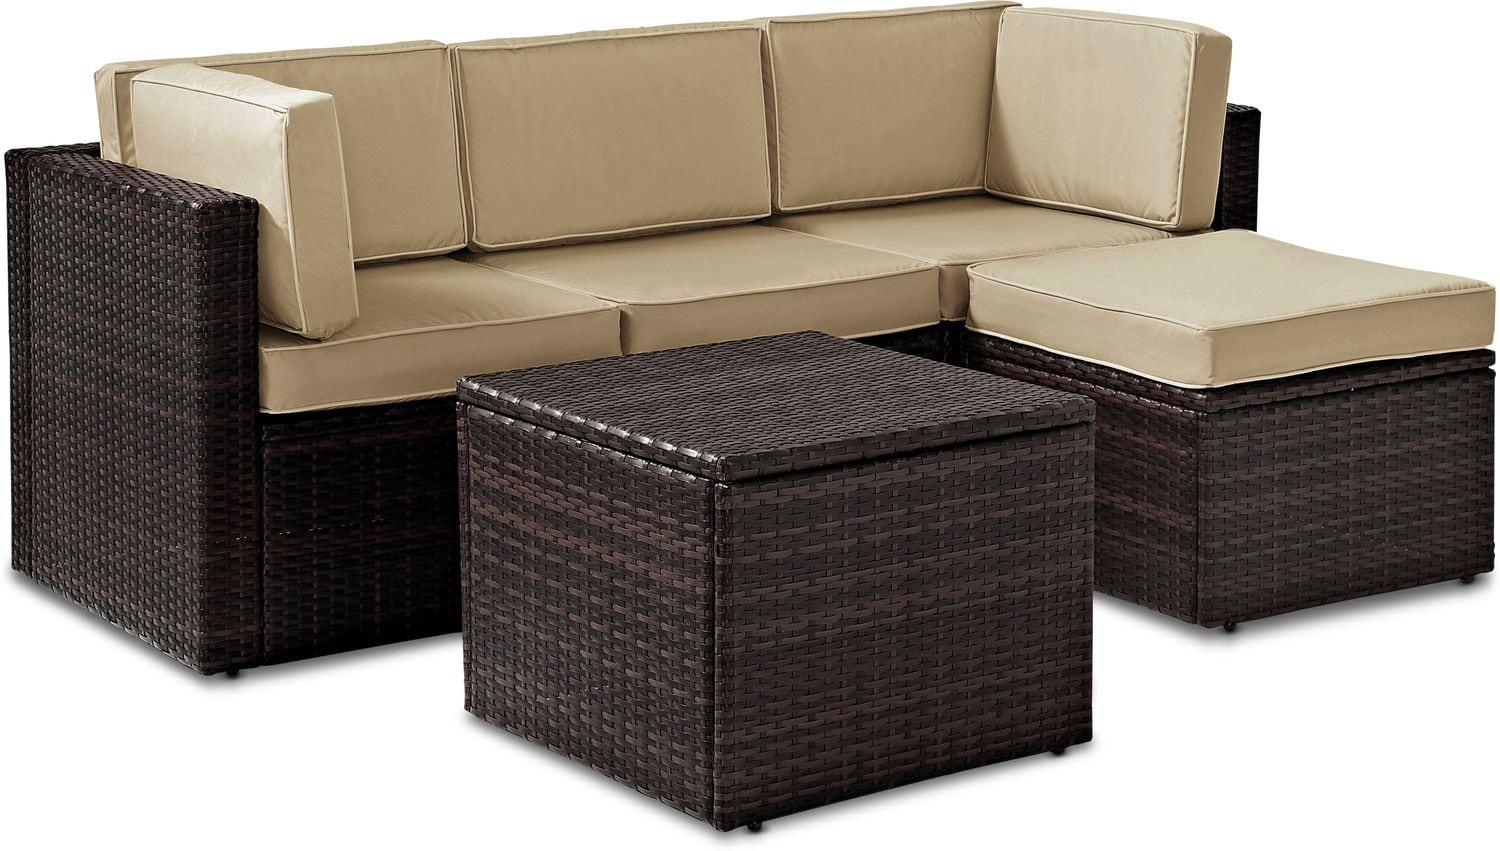 Outdoor Furniture - Aldo Oudoor Sofa, Ottoman, and Coffee Table Set